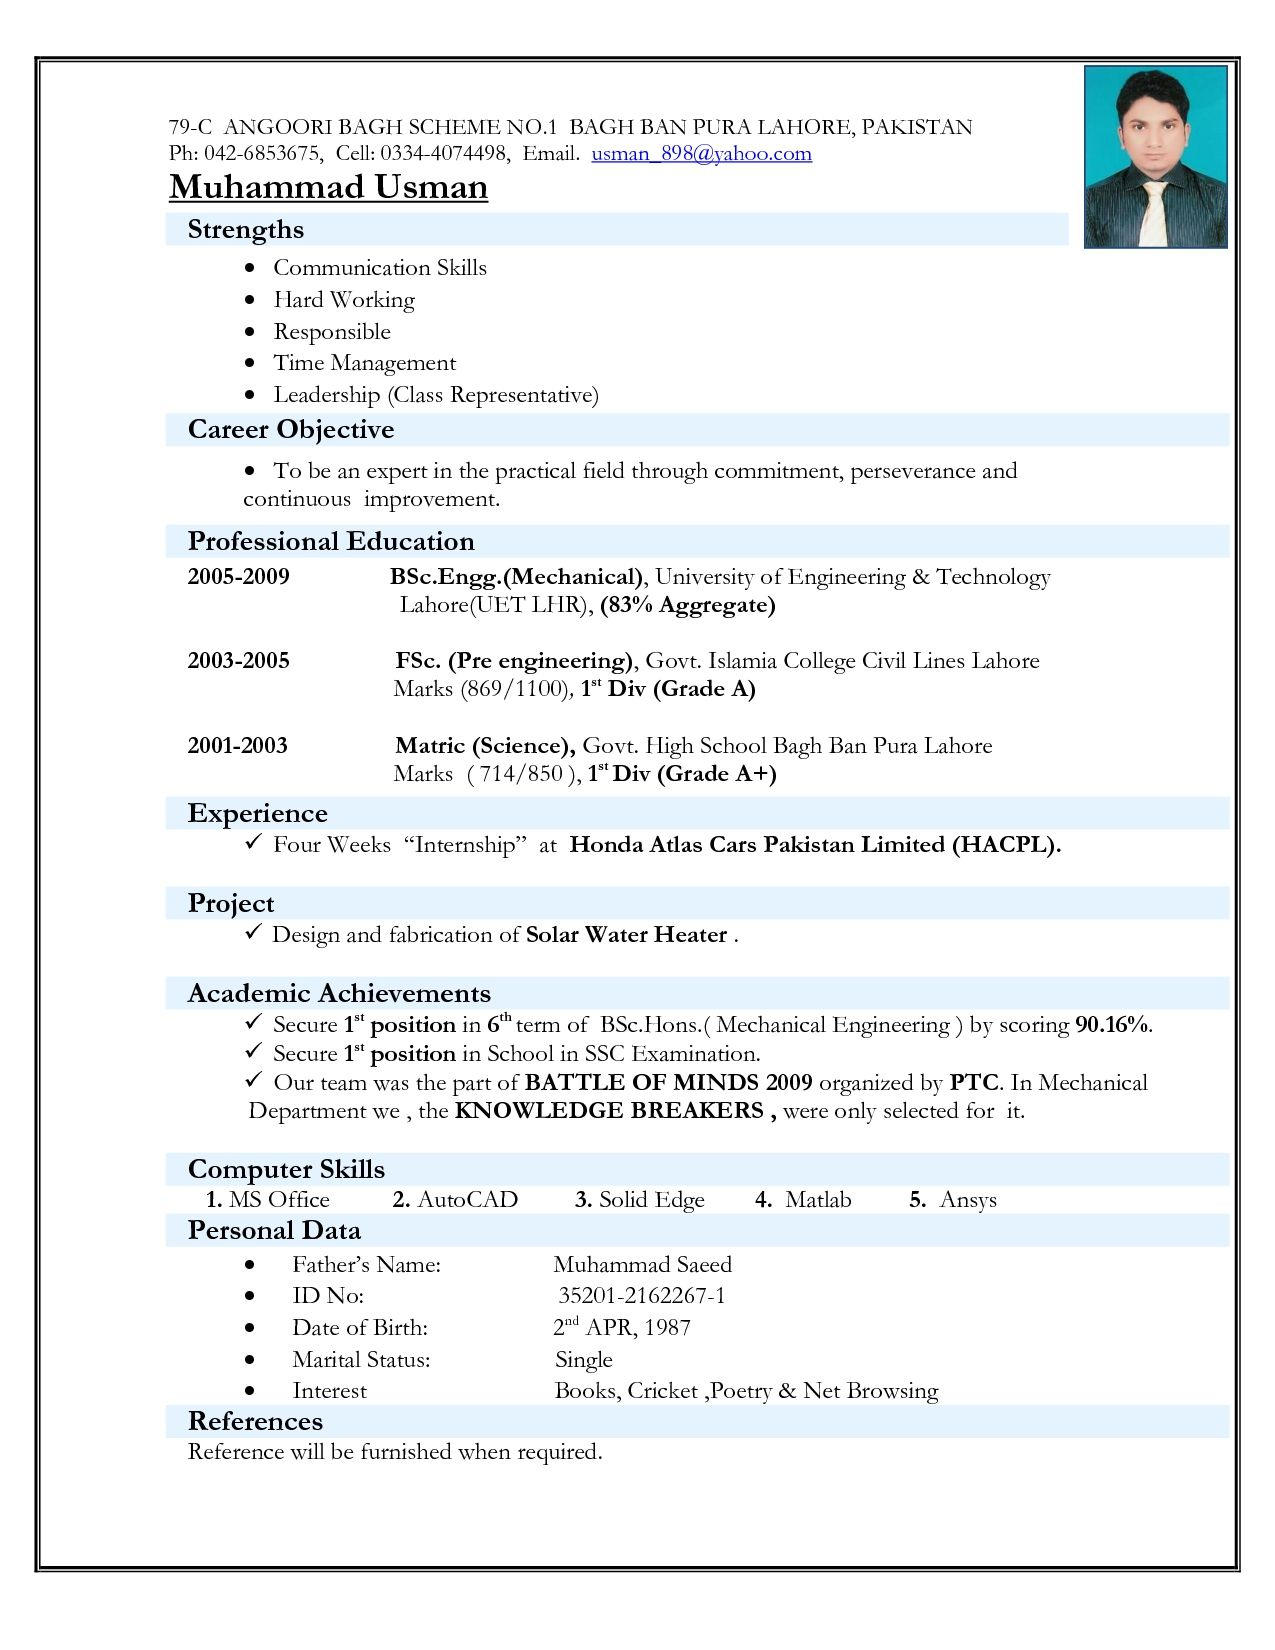 56 Cool Resume Format For Freshers for Ideas